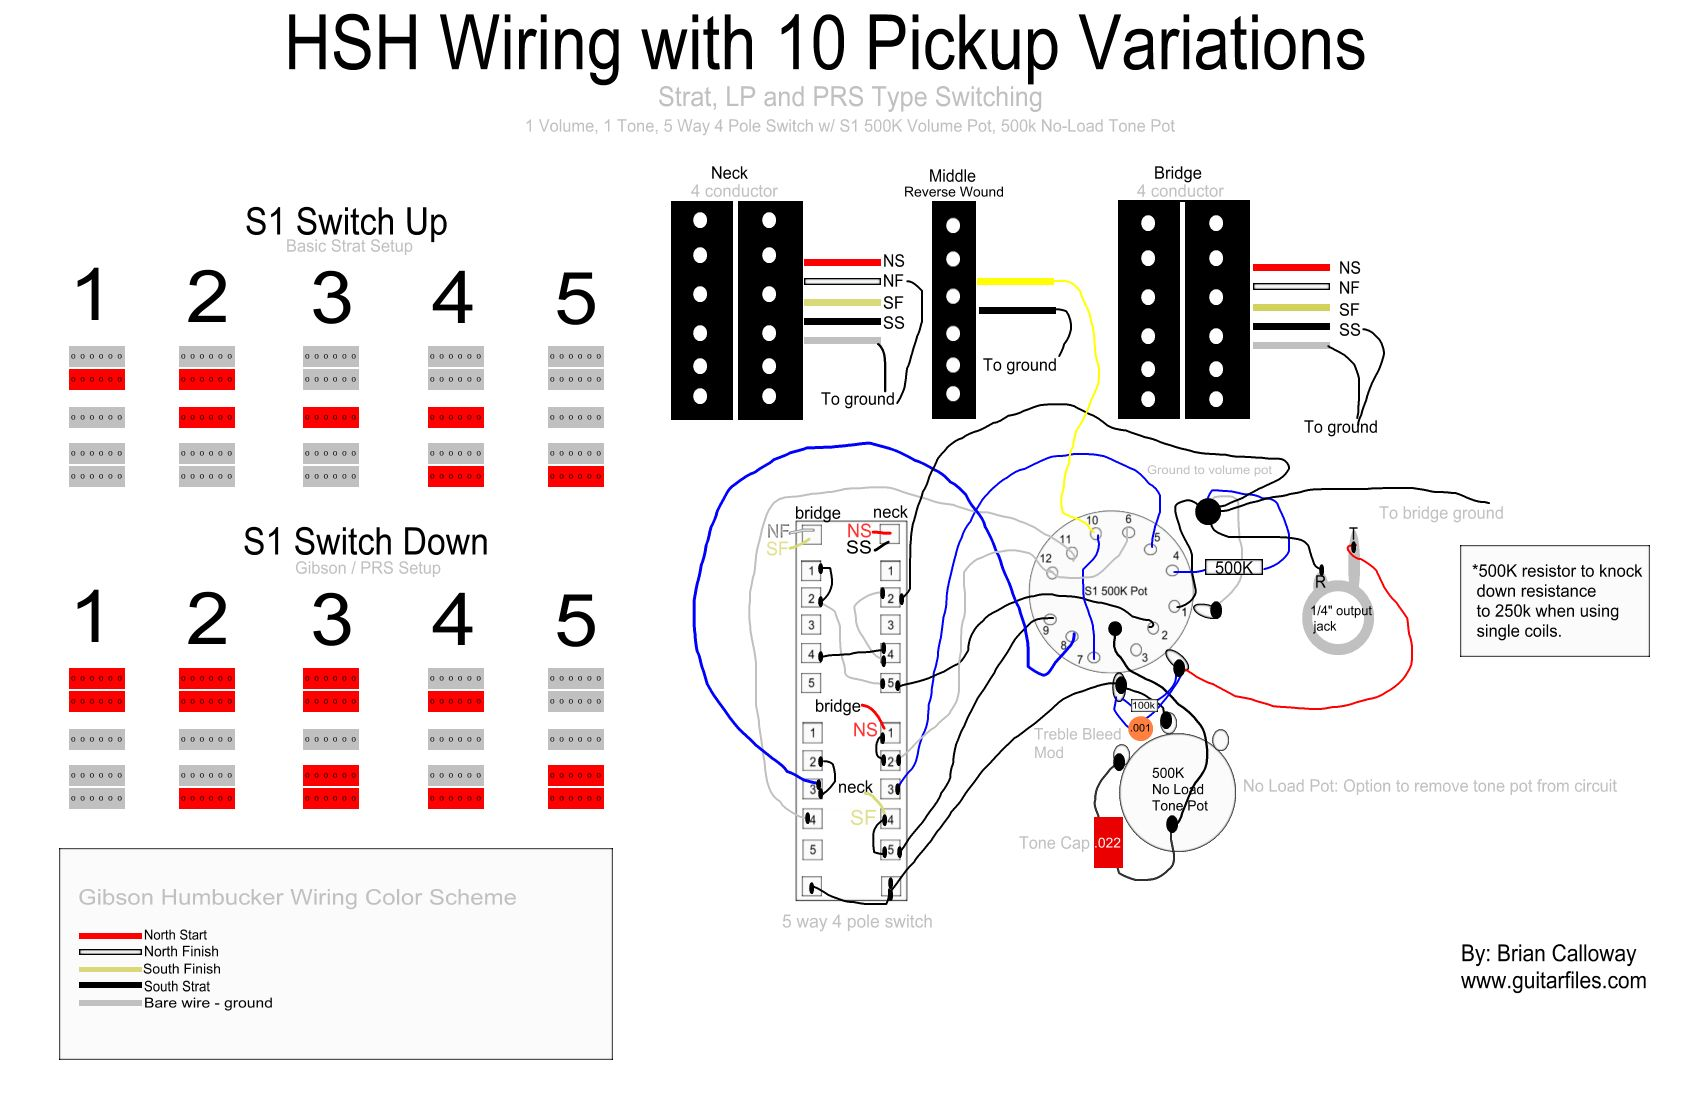 hsh guitar wiring 10 pickup combinations 4 pole switch and s1 switching system diagram by. Black Bedroom Furniture Sets. Home Design Ideas